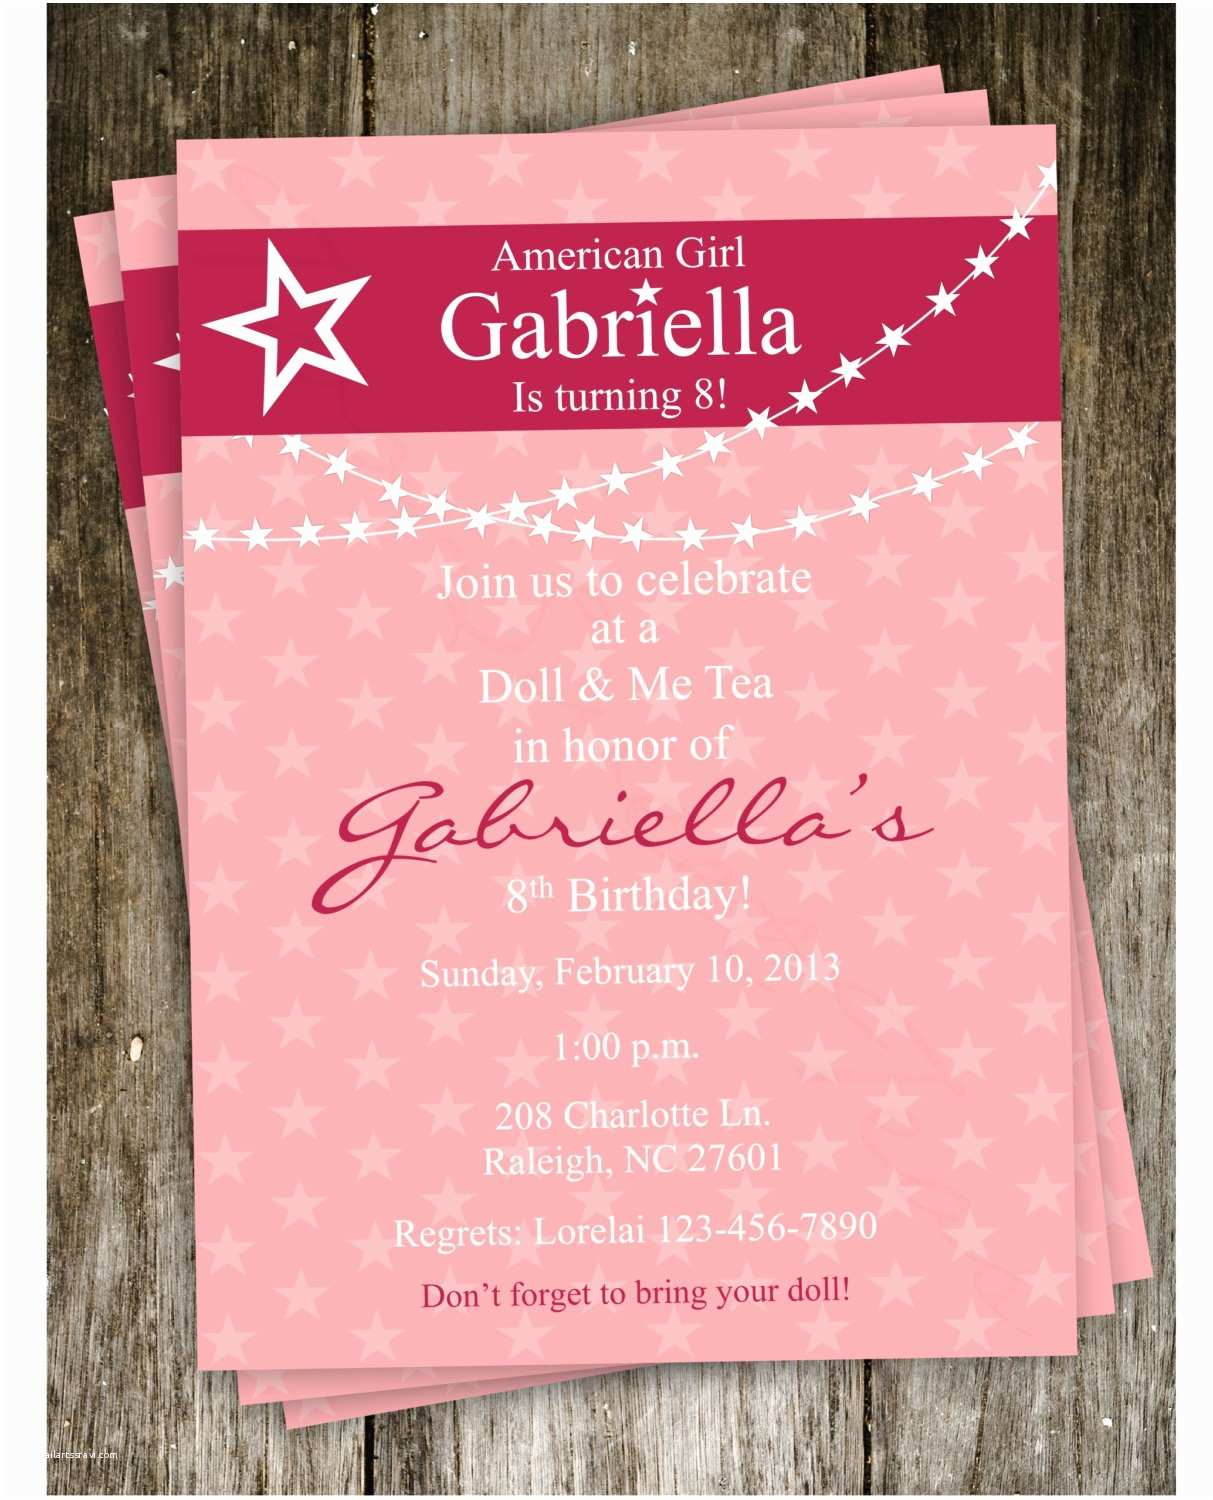 Create Birthday Invitations Amazing American Girl Birthday Party Invitations